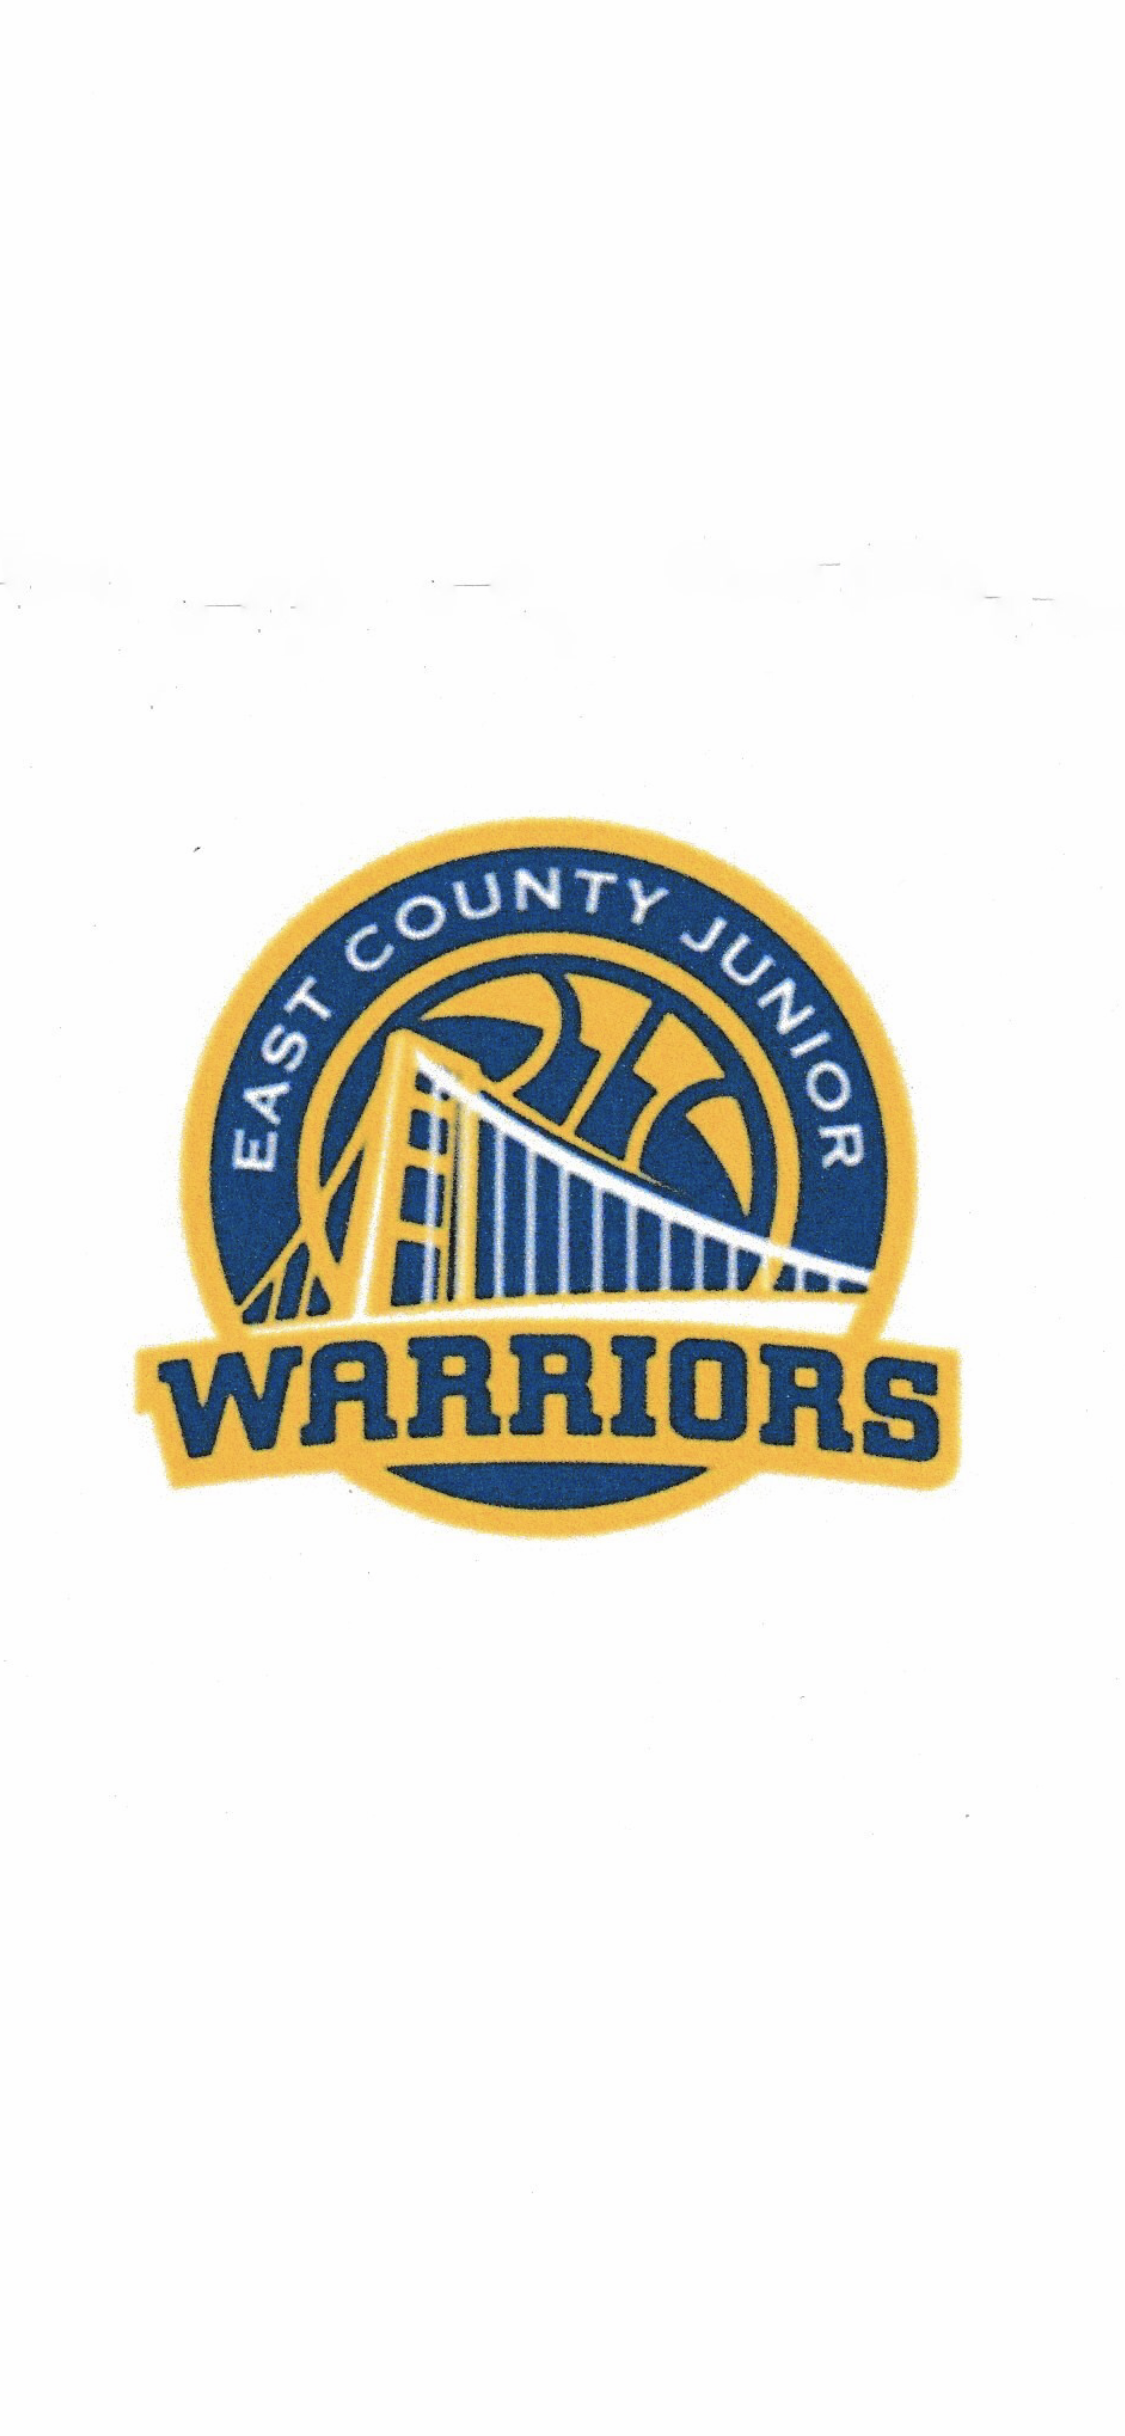 East County Jr. Warriors